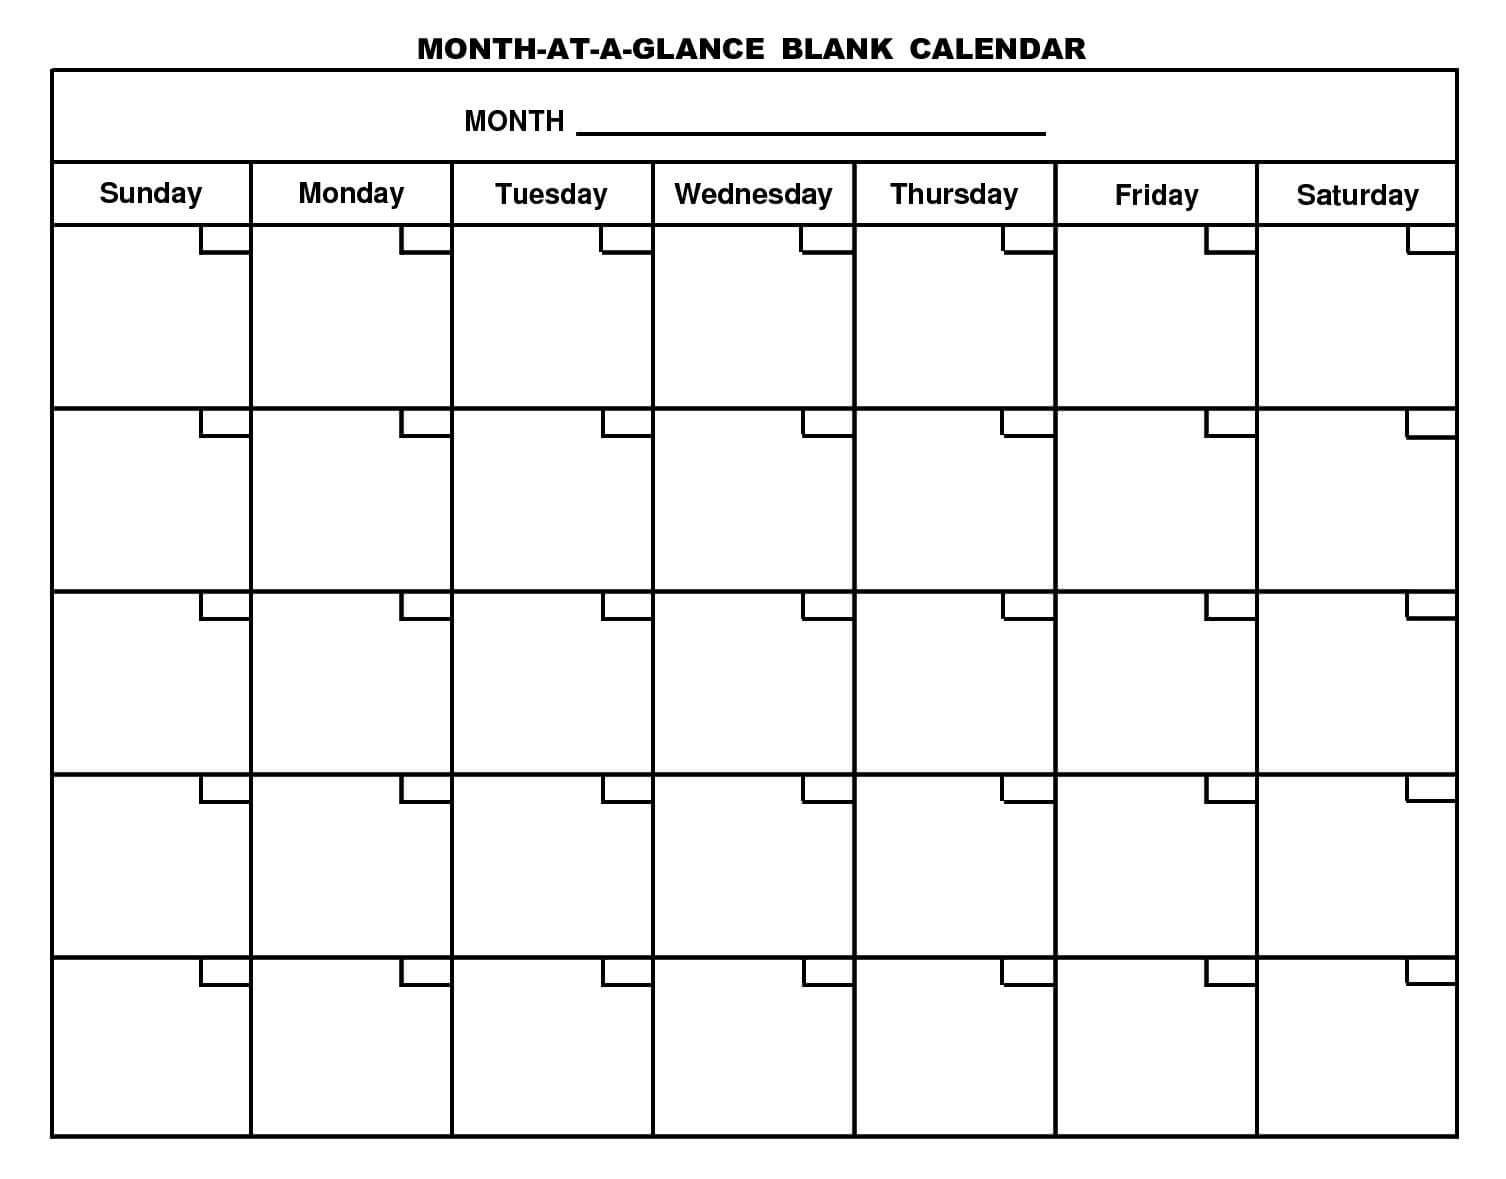 Free Printable Monthly Calendars At A Glance | Monthly For Month At A Glance Blank Calendar Template